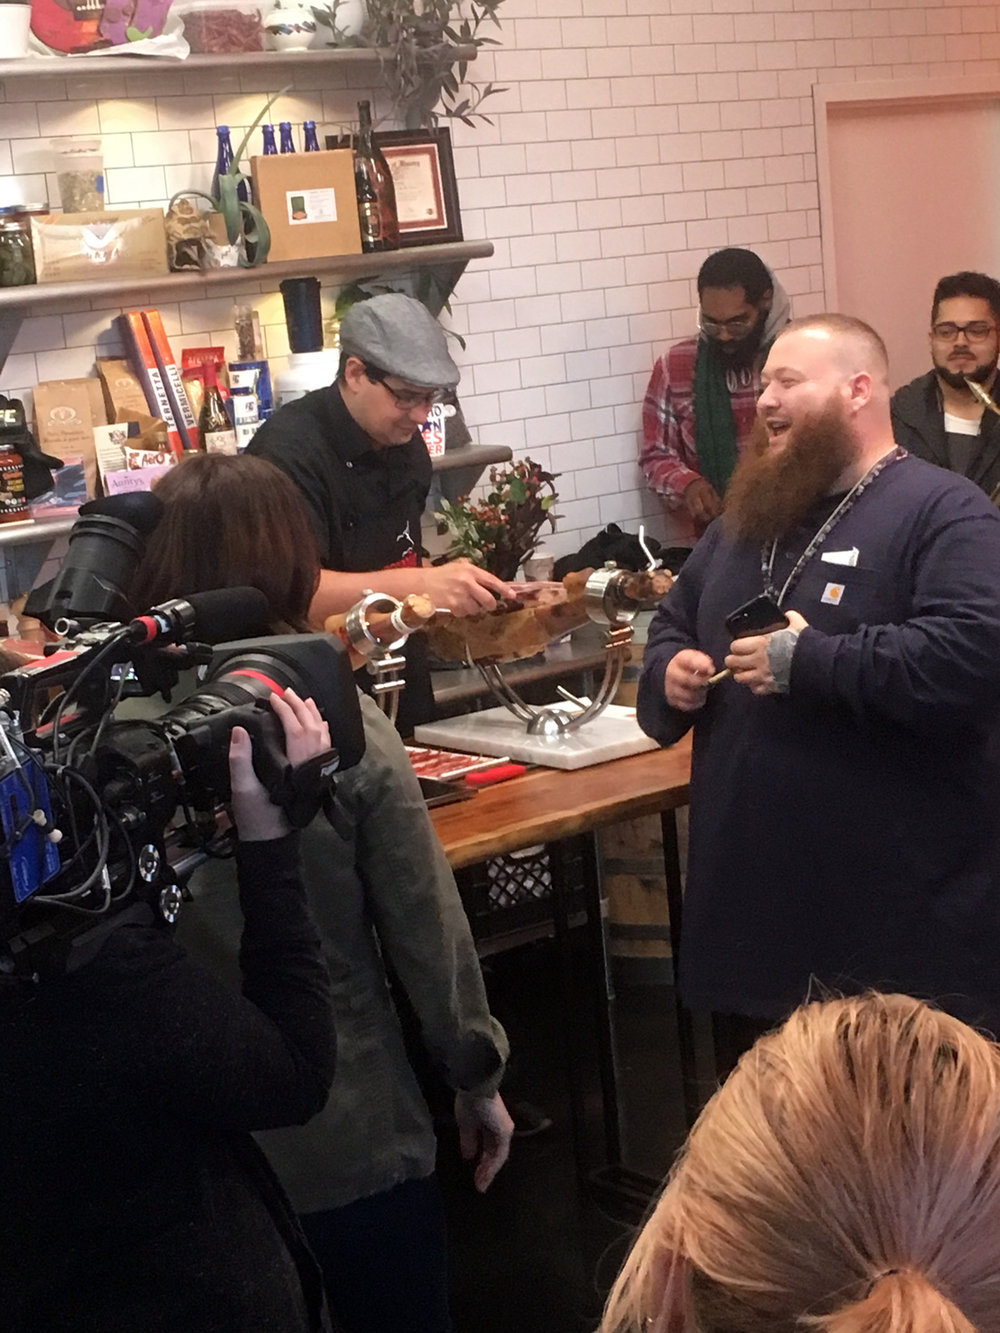 Action Bronson checking out the jamón